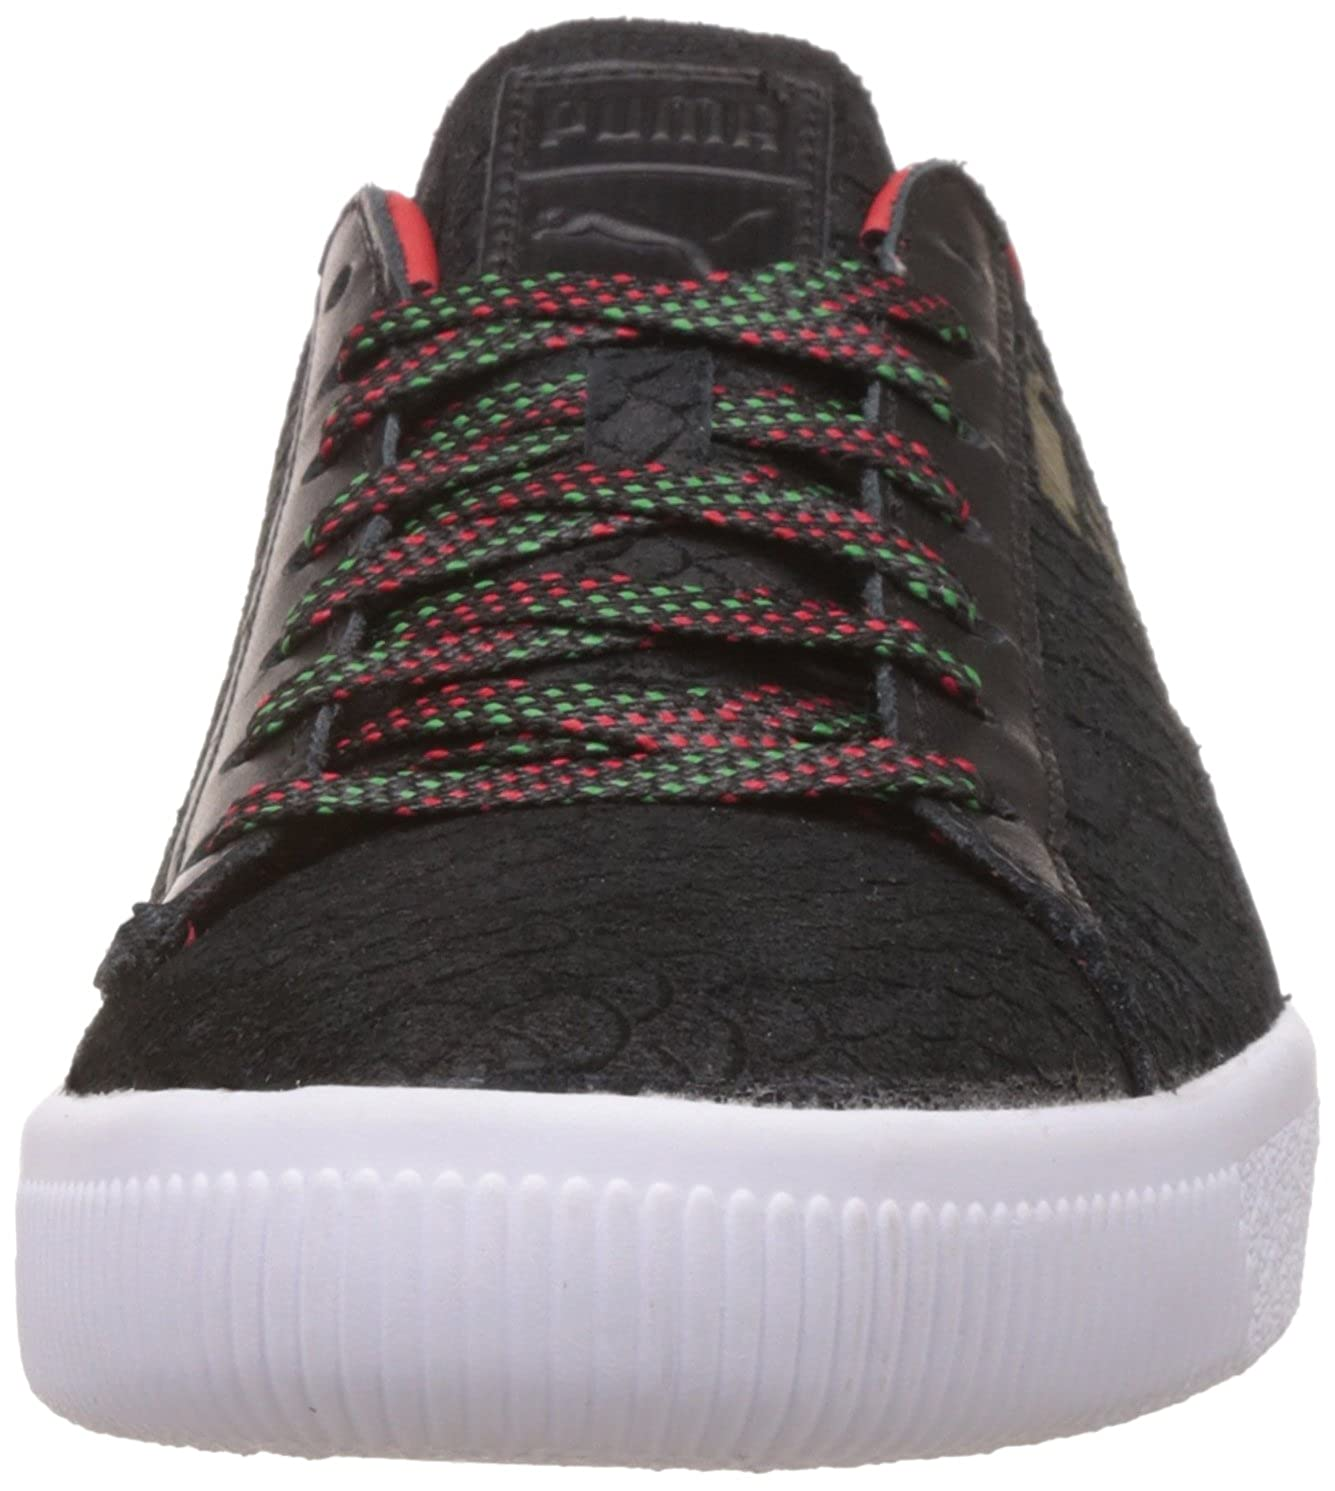 5fcd1964f24d14 Puma Men s Clyde GCC Black and High Risk Red Sneakers - 10 UK India (44.5  EU)  Buy Online at Low Prices in India - Amazon.in